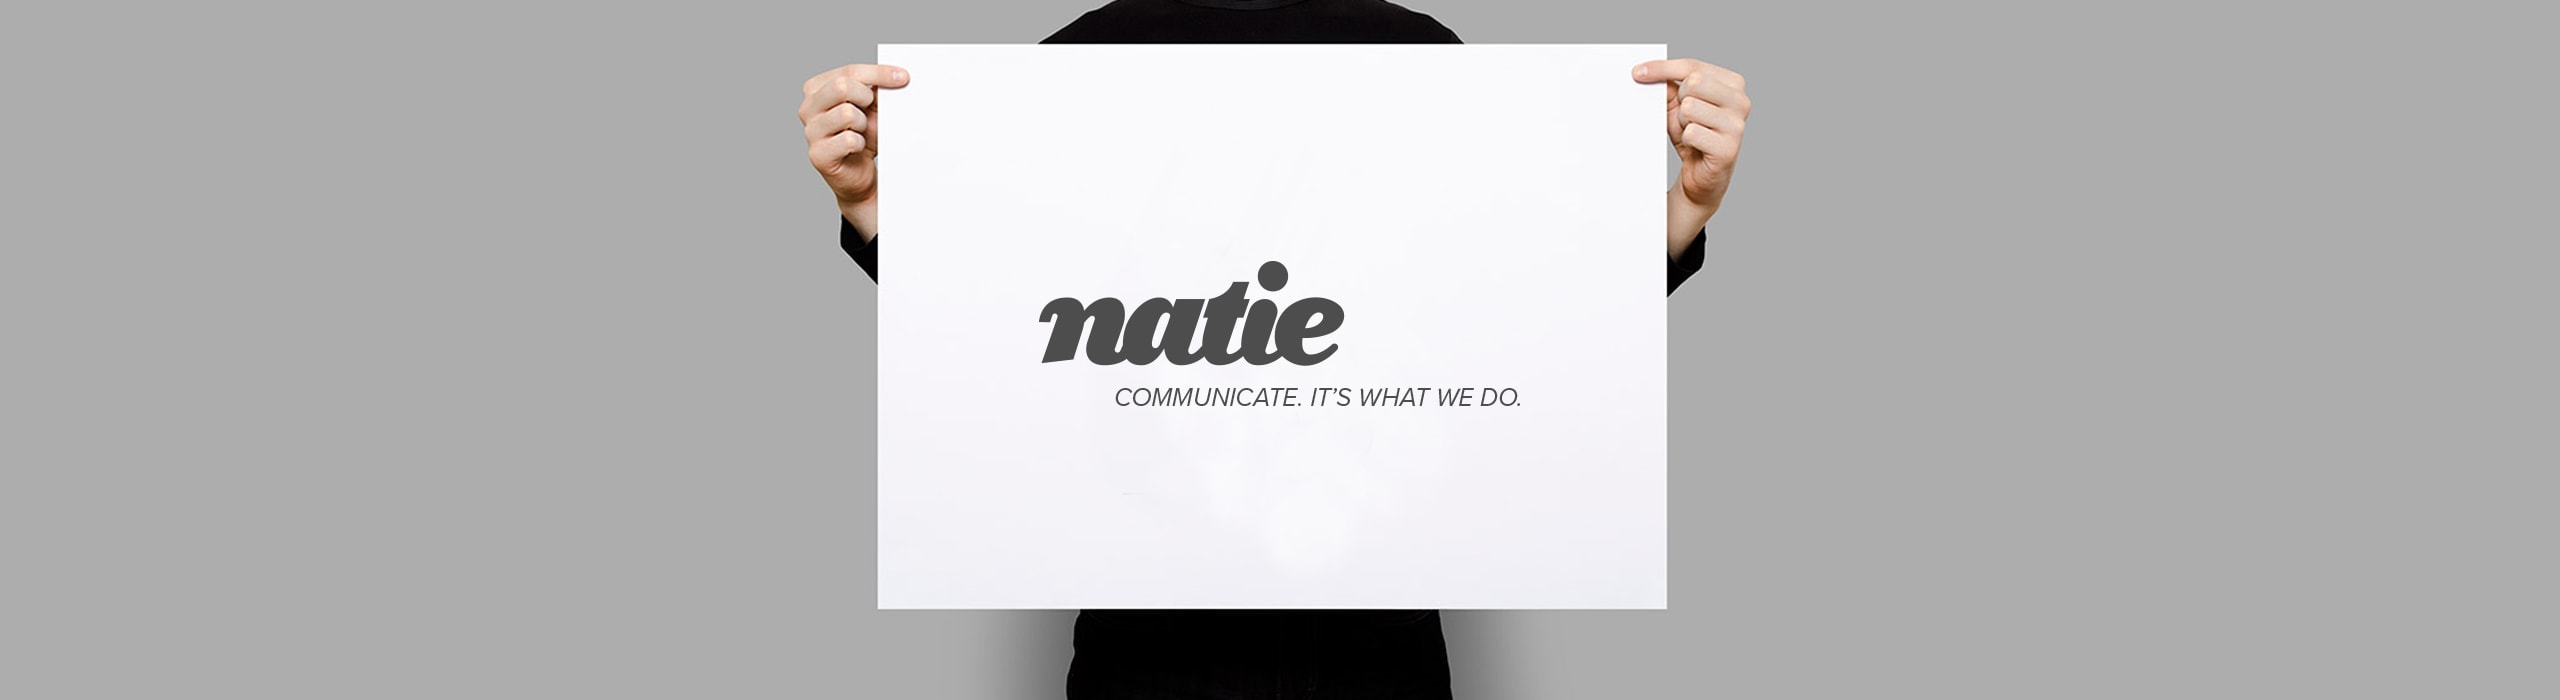 Natie - natie-rebrand-logo-design - Natie Branding Agency